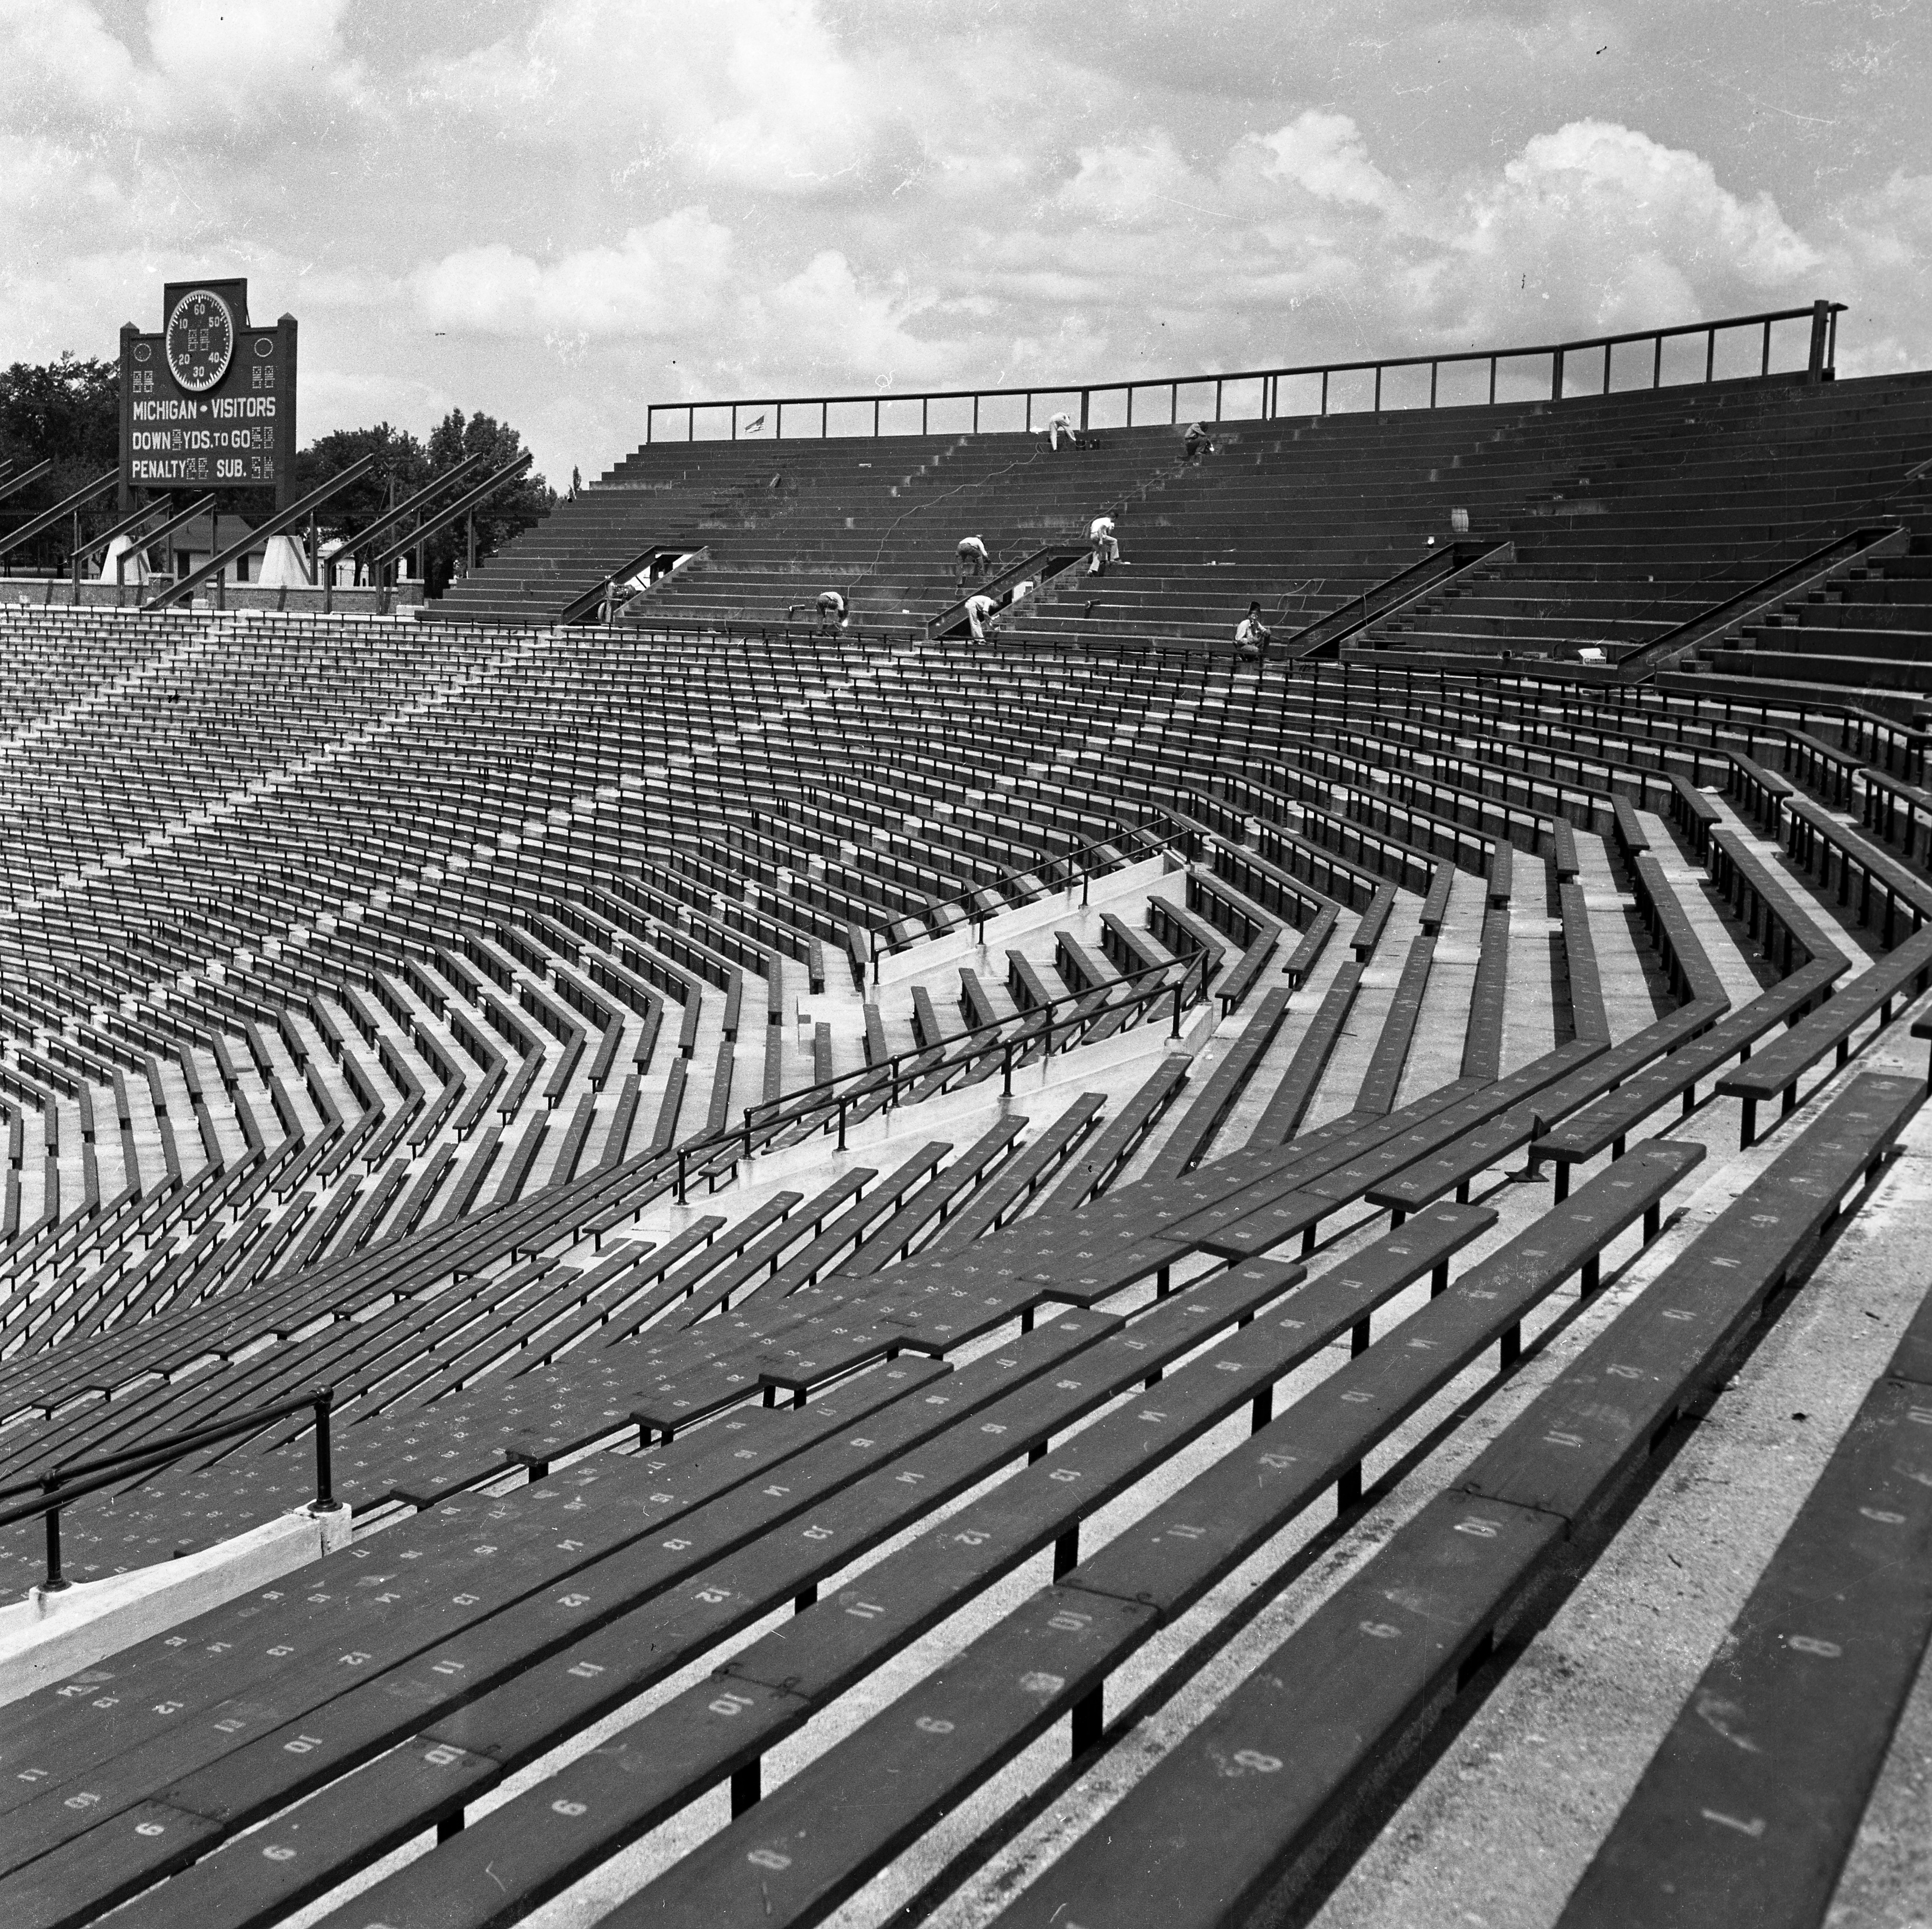 Building extra seats in the University of Michigan Stadium, 1949 image